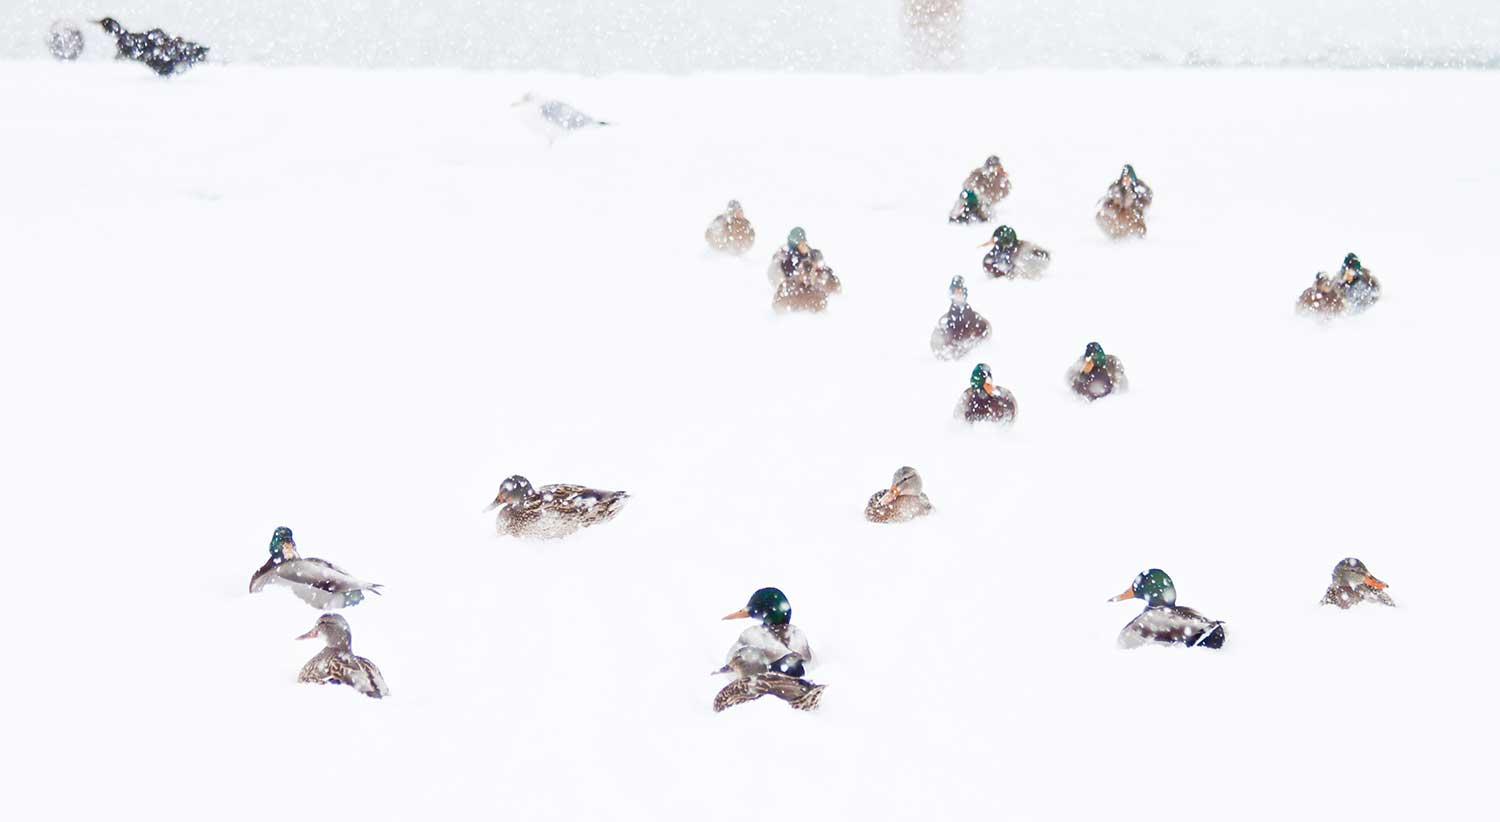 A flock of ducks resting in the snow.